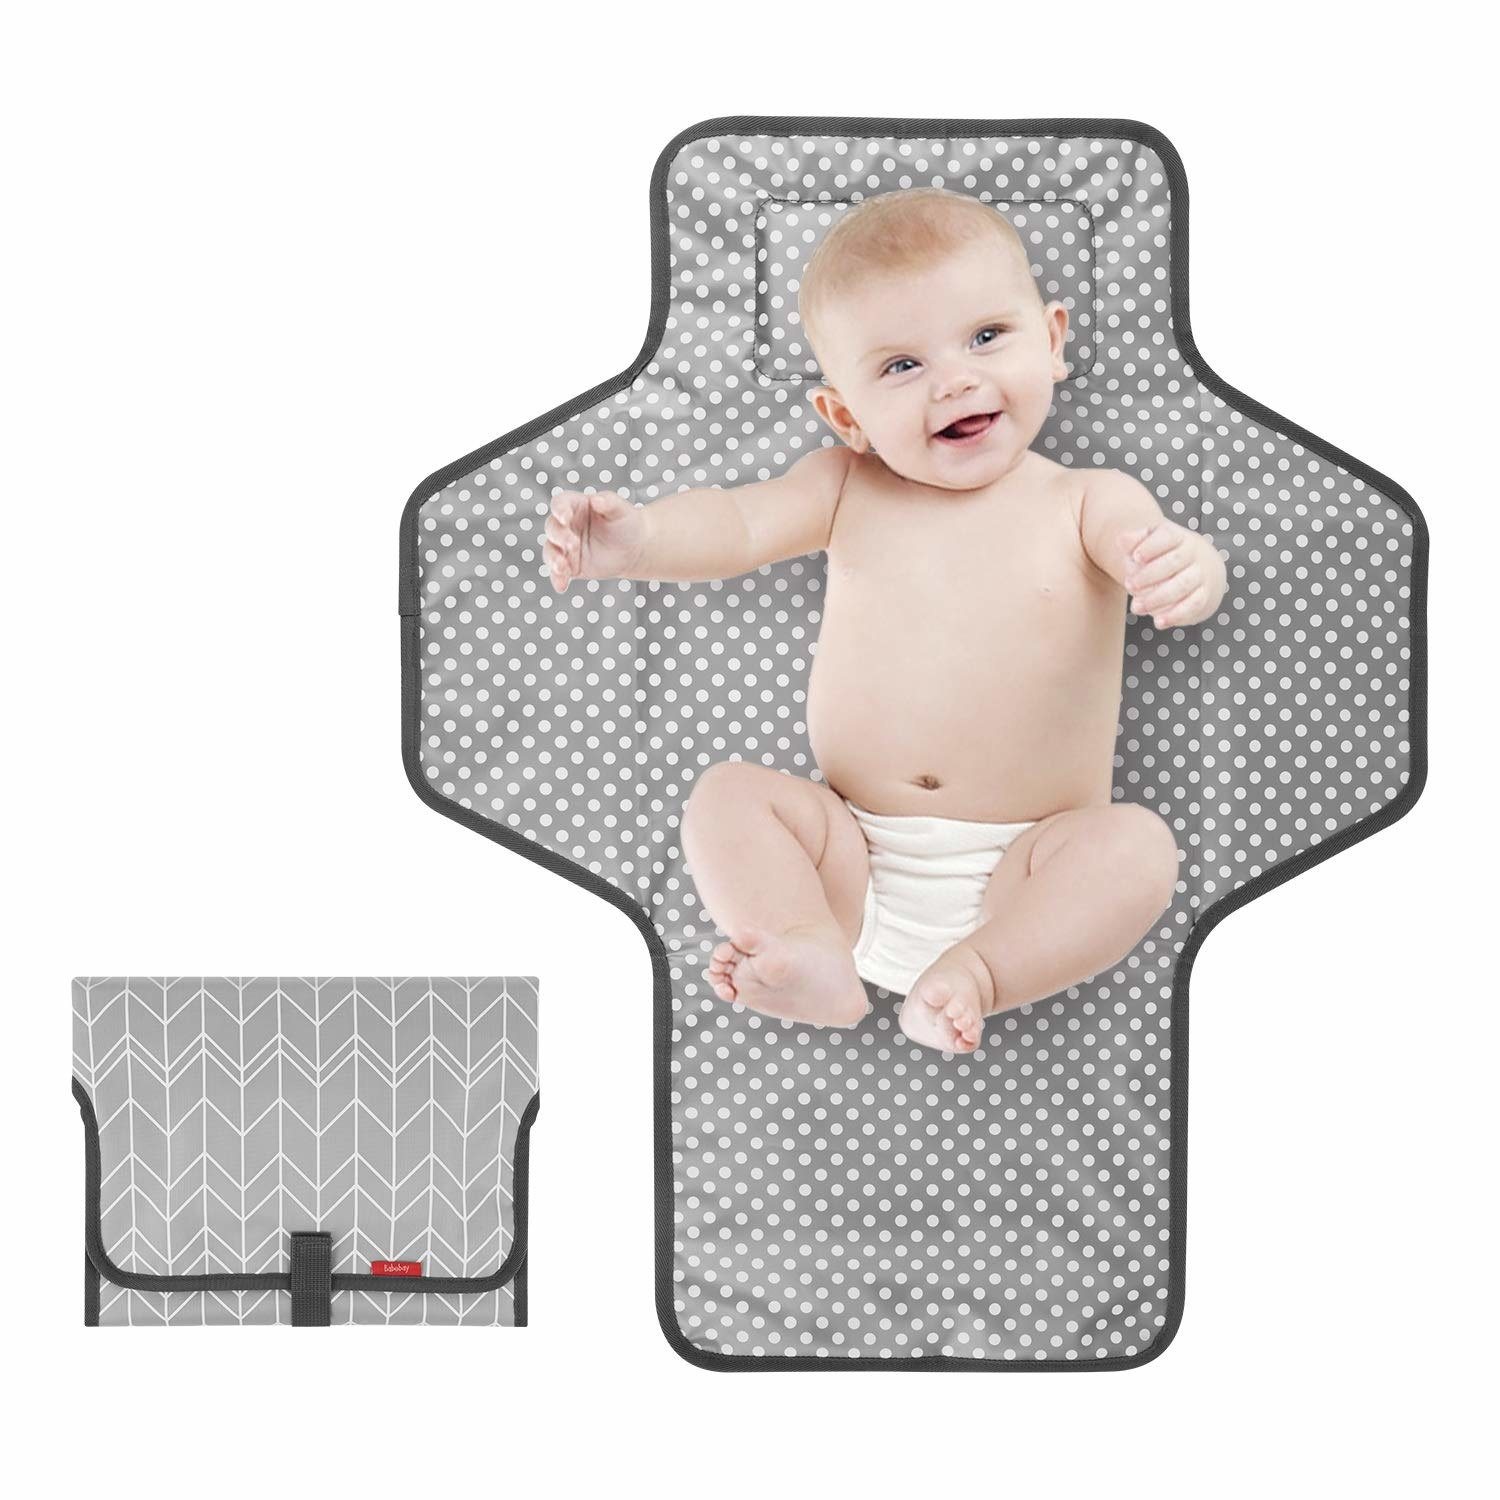 The grey patterned changing mat with a baby and folded up